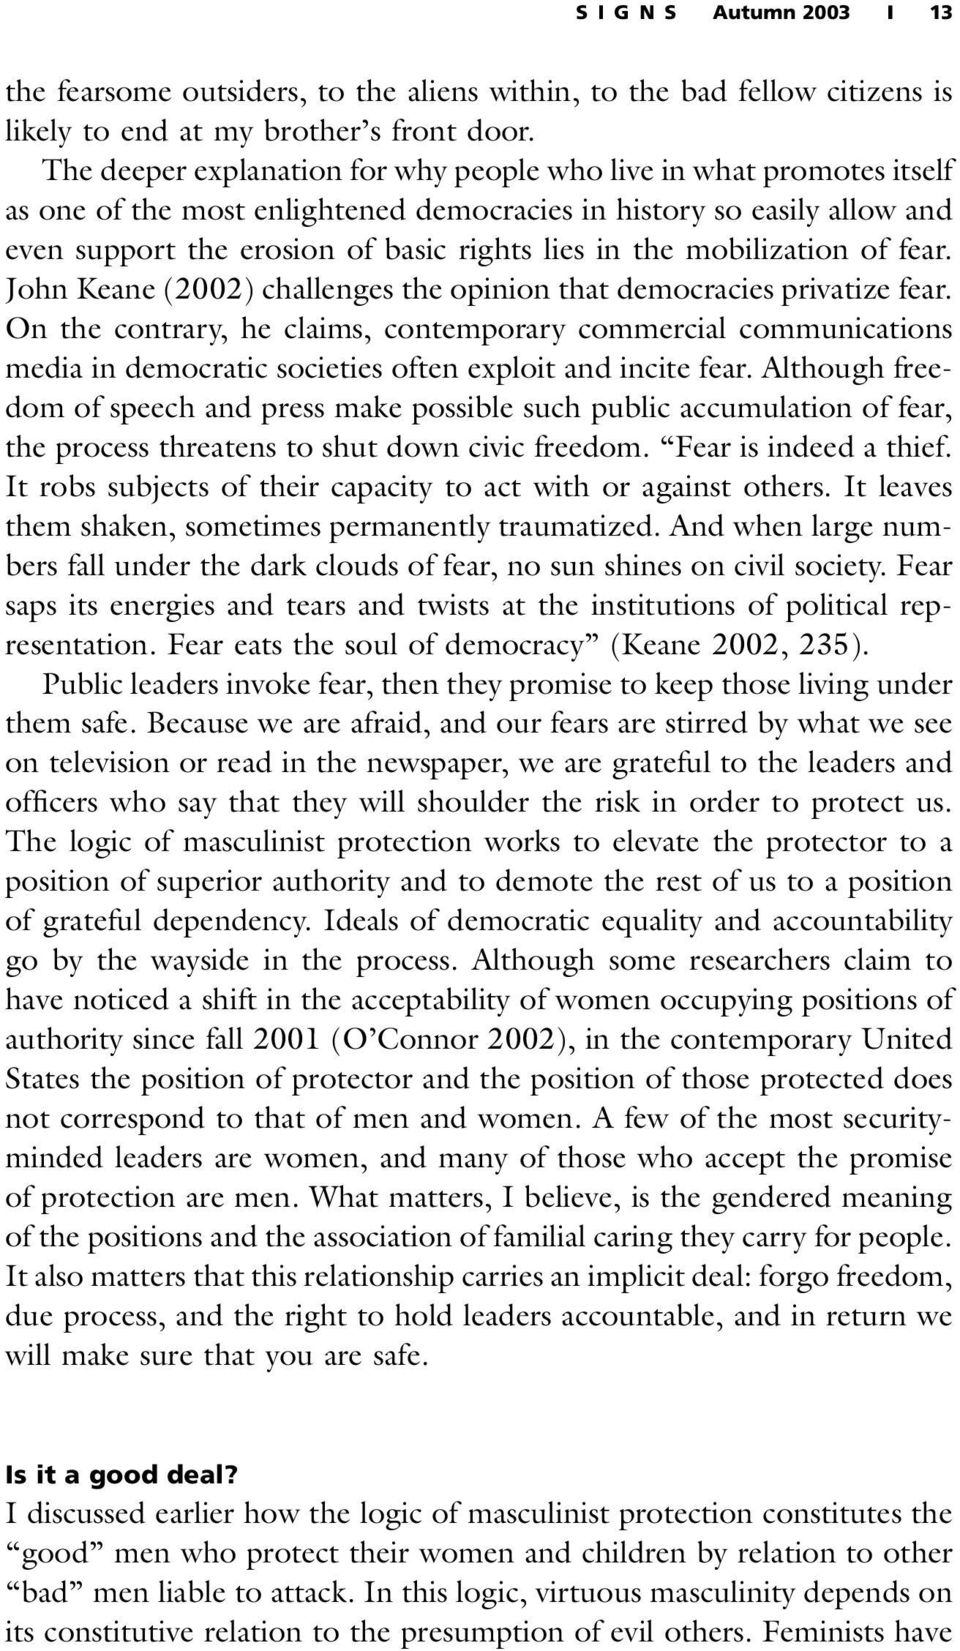 mobilization of fear. John Keane (2002) challenges the opinion that democracies privatize fear.